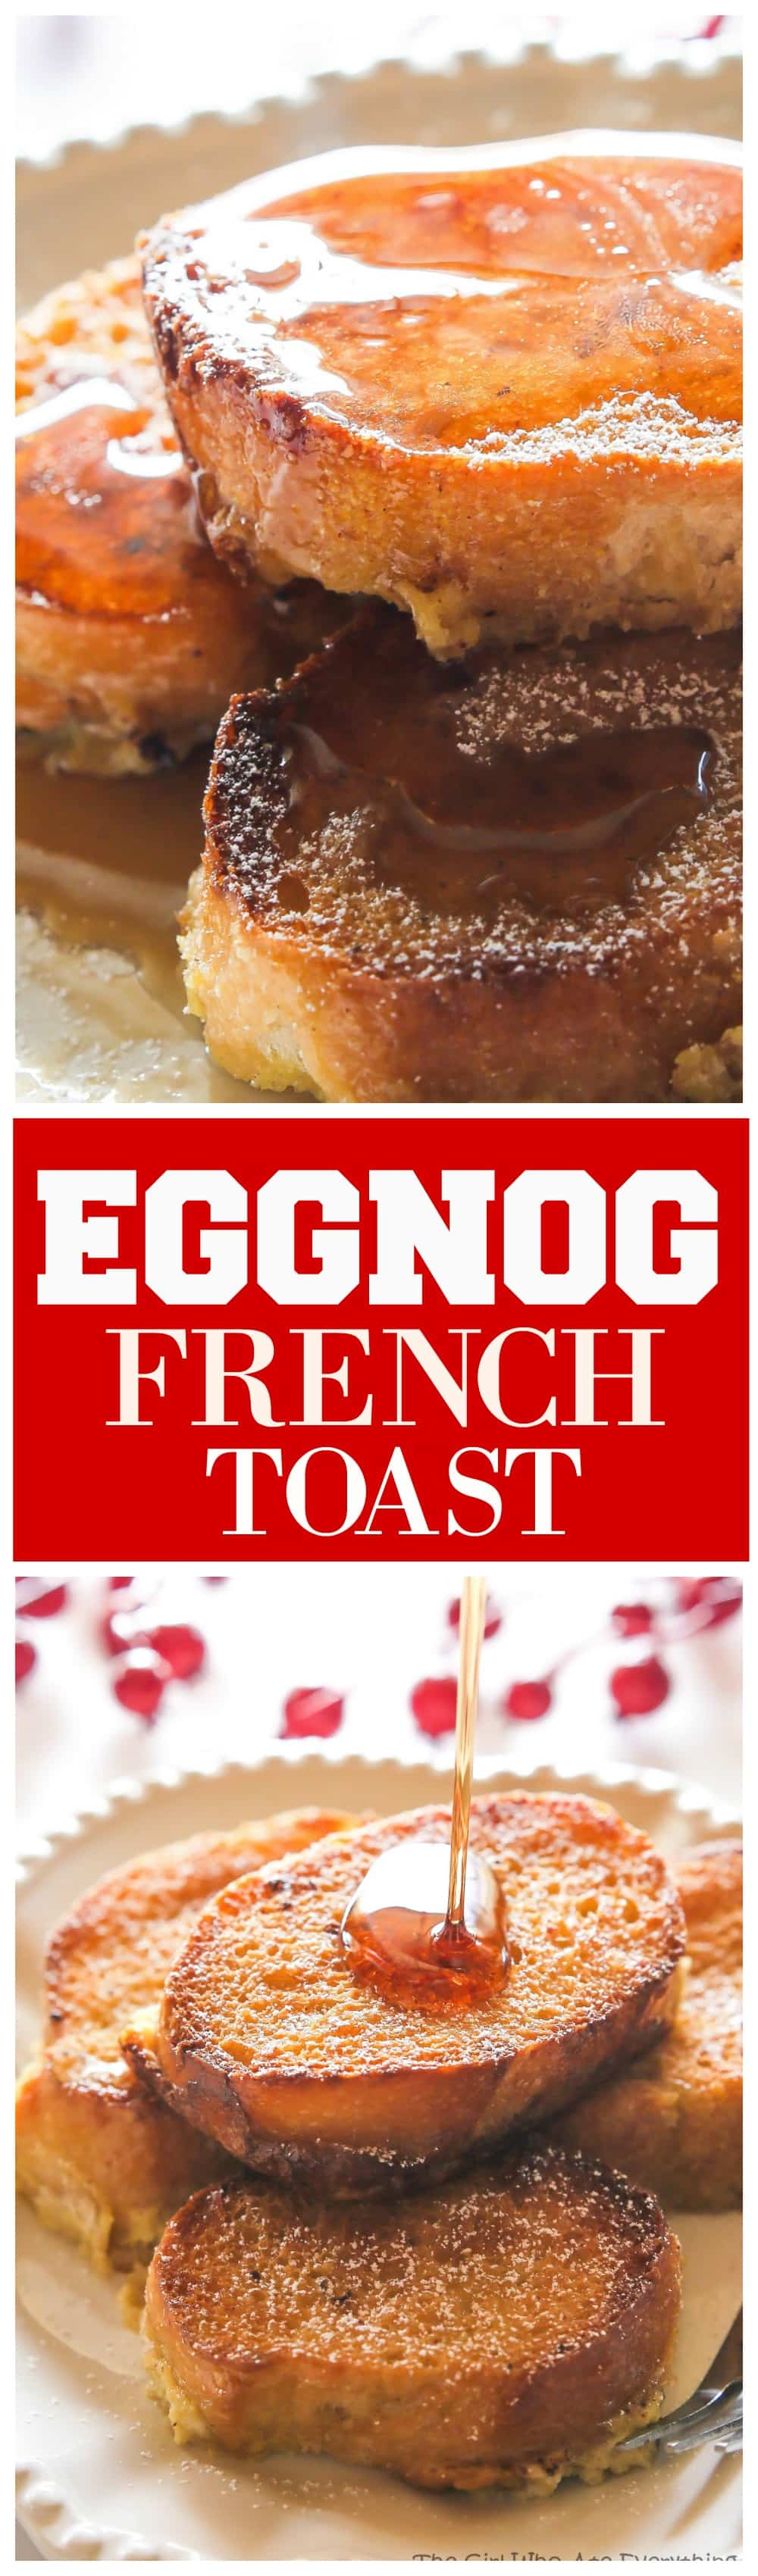 Eggnog French Toast - bread soaked overnight in an eggnog mixture and baked in the morning. #christmas #morning #breakfast #eggnog #french #toast #recipe